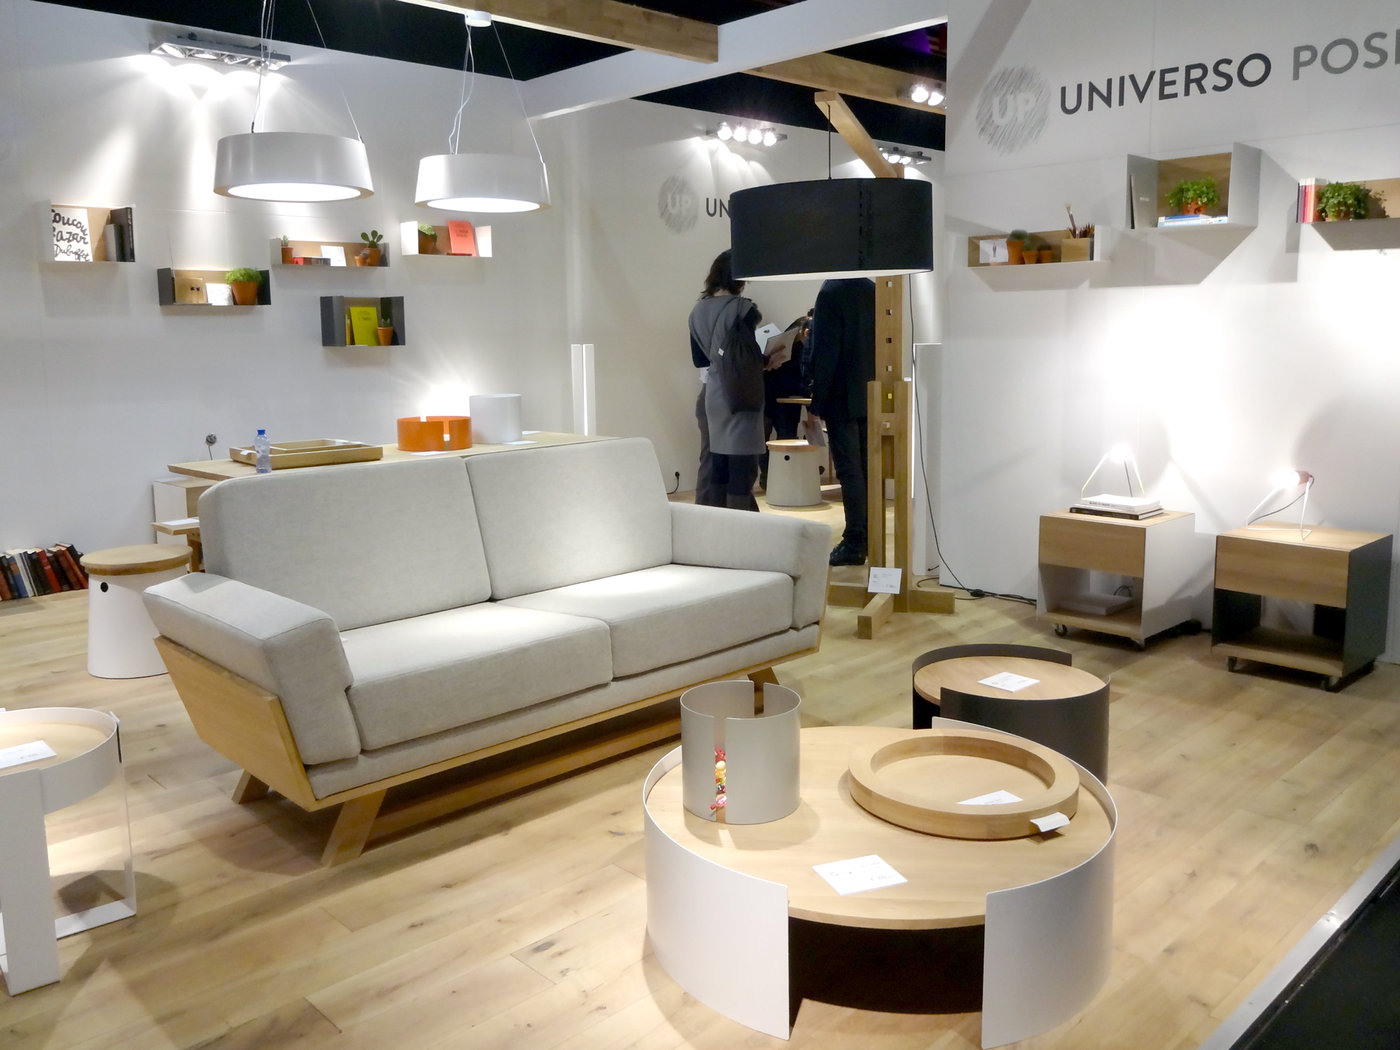 Etagere Universo Positivo Universo Positivo Perfect Design Crush Universo Positivo With